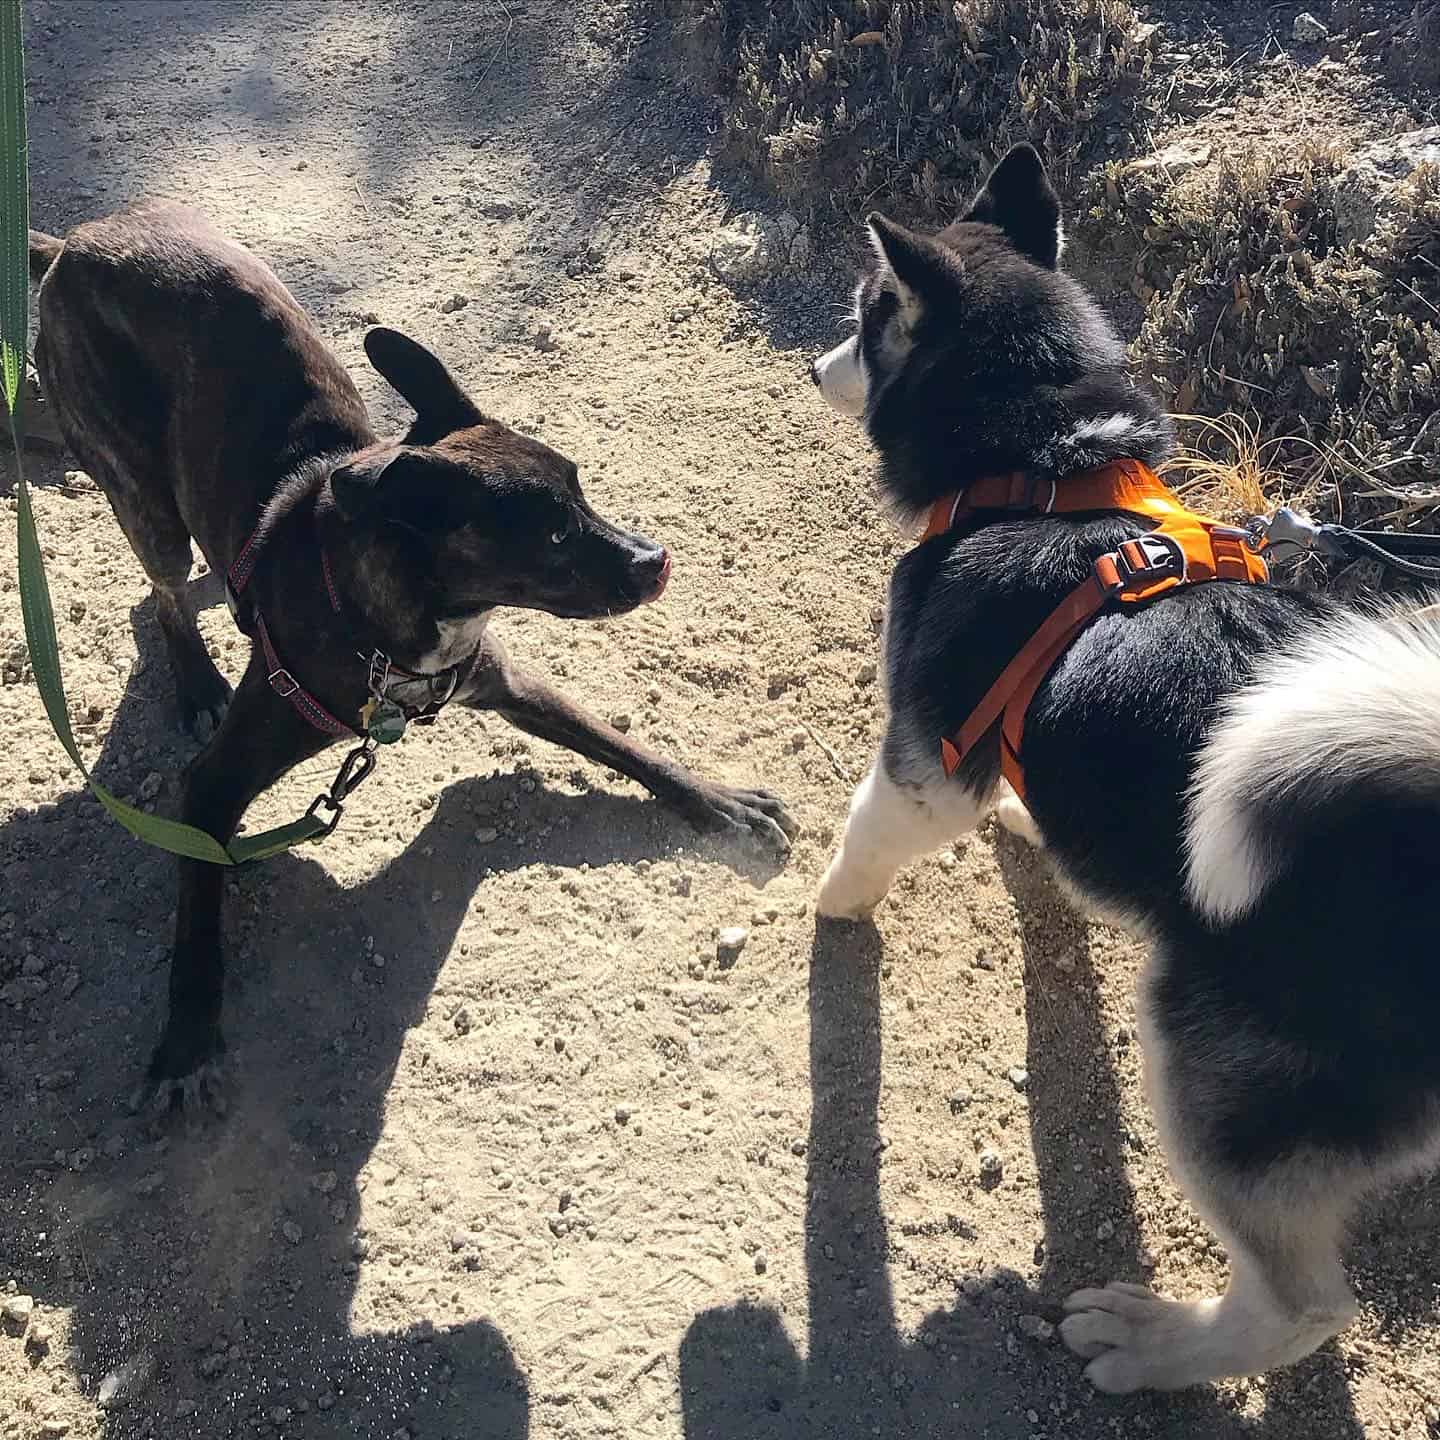 Brindle puppy and Husky dog playing on a pet friendly trail